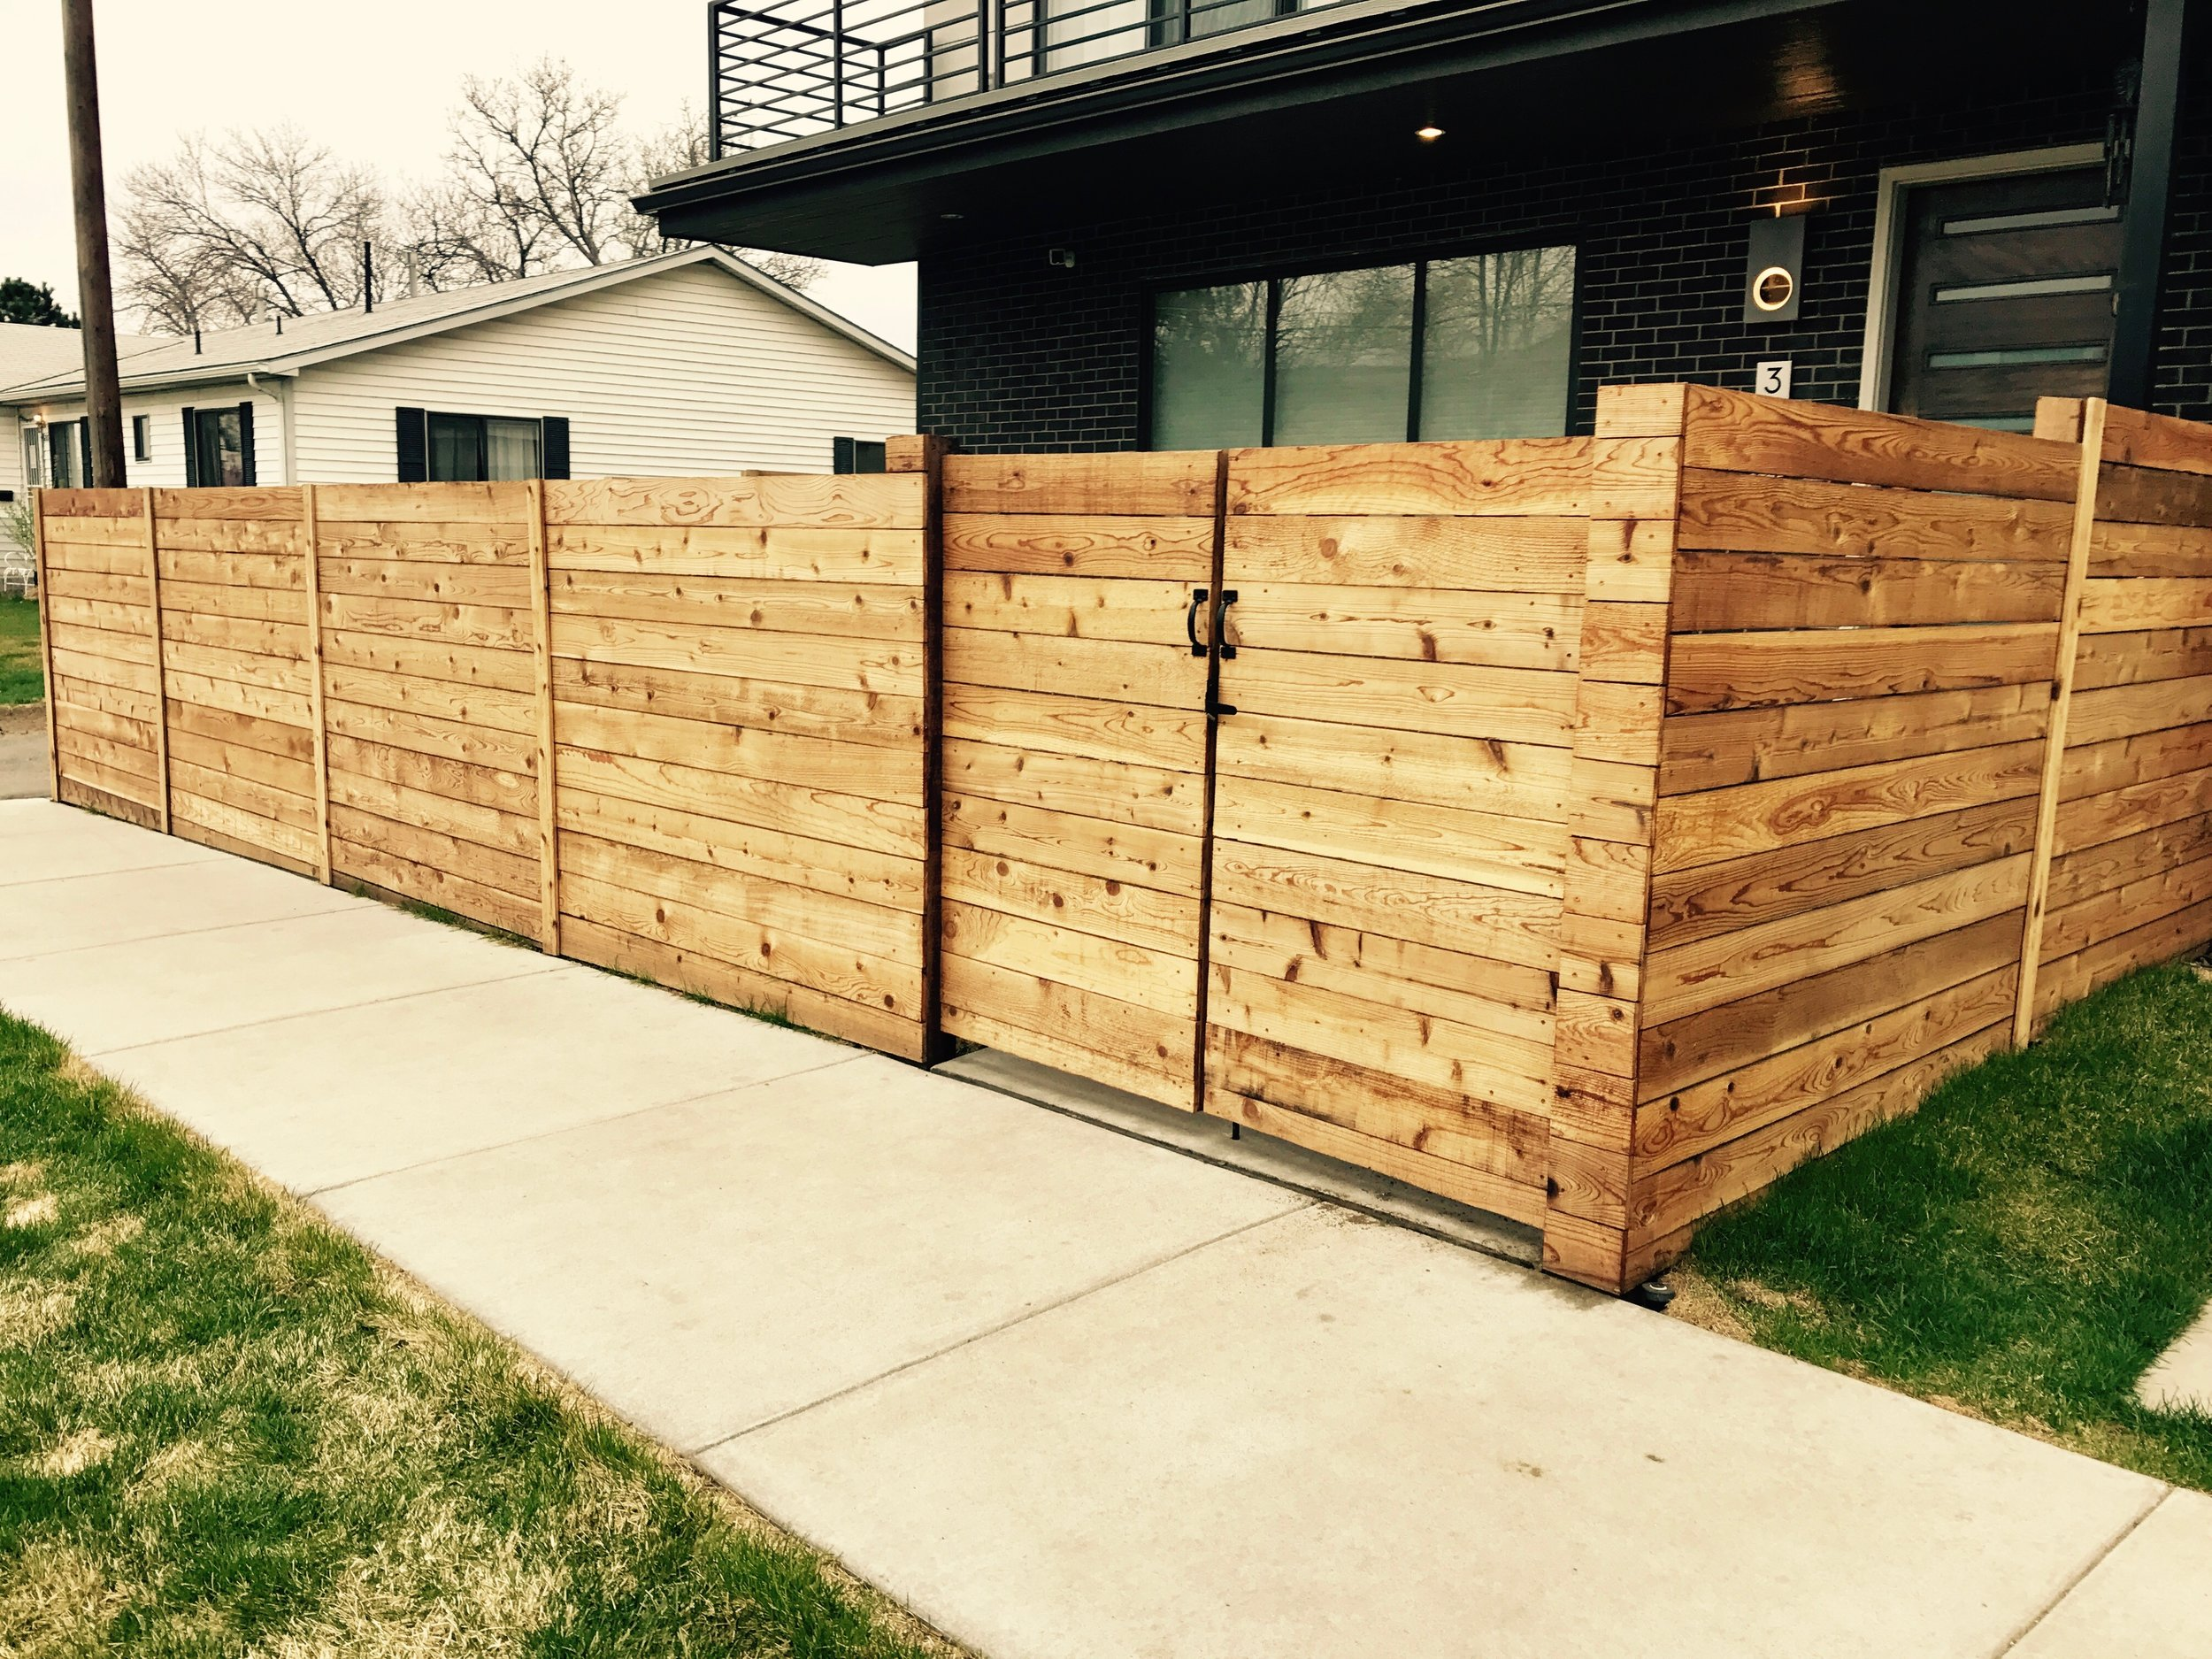 Horizontal Privacy Fence - Price🌲🌲🌲Durability🌲🌲Maintanence Costs🌲🌲Longevity🌲🌲